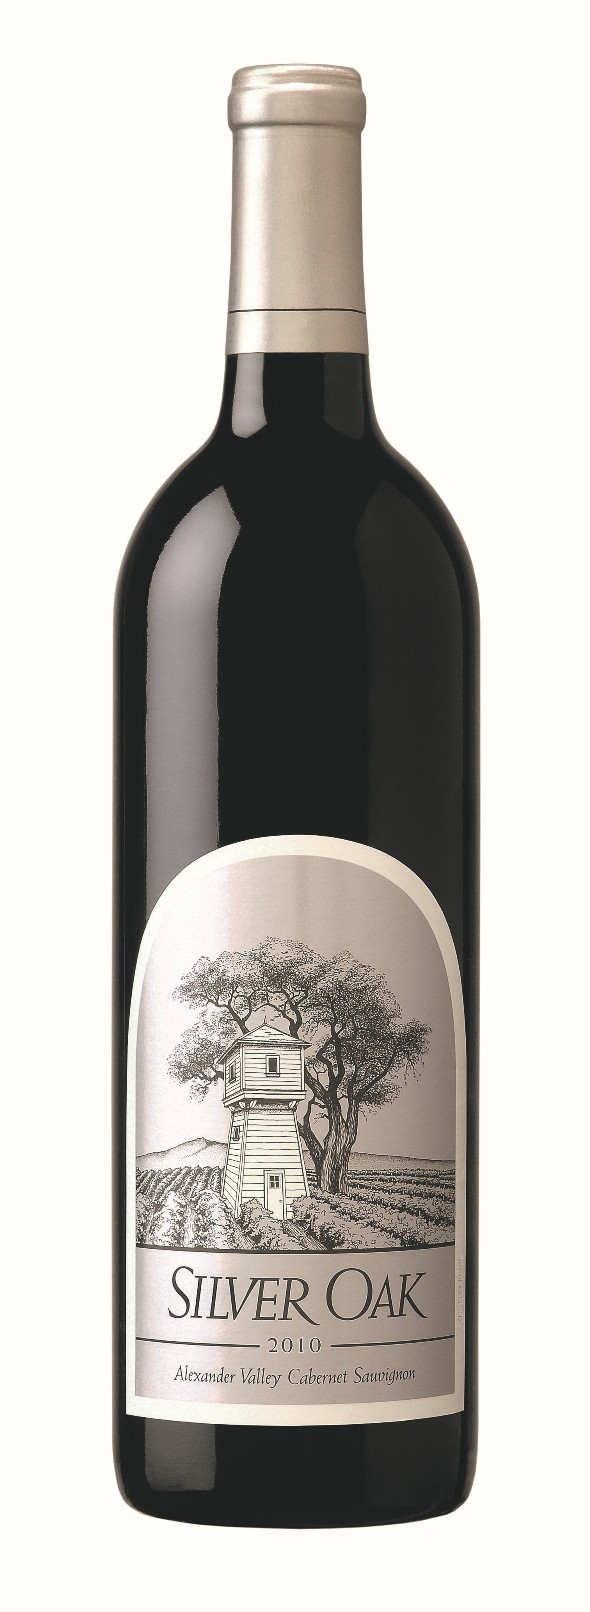 Silver Oak Cabernet Sauvignon Alexander Valley 2010, 1.5L () from The BPW - Merchants of rare and fine wines.